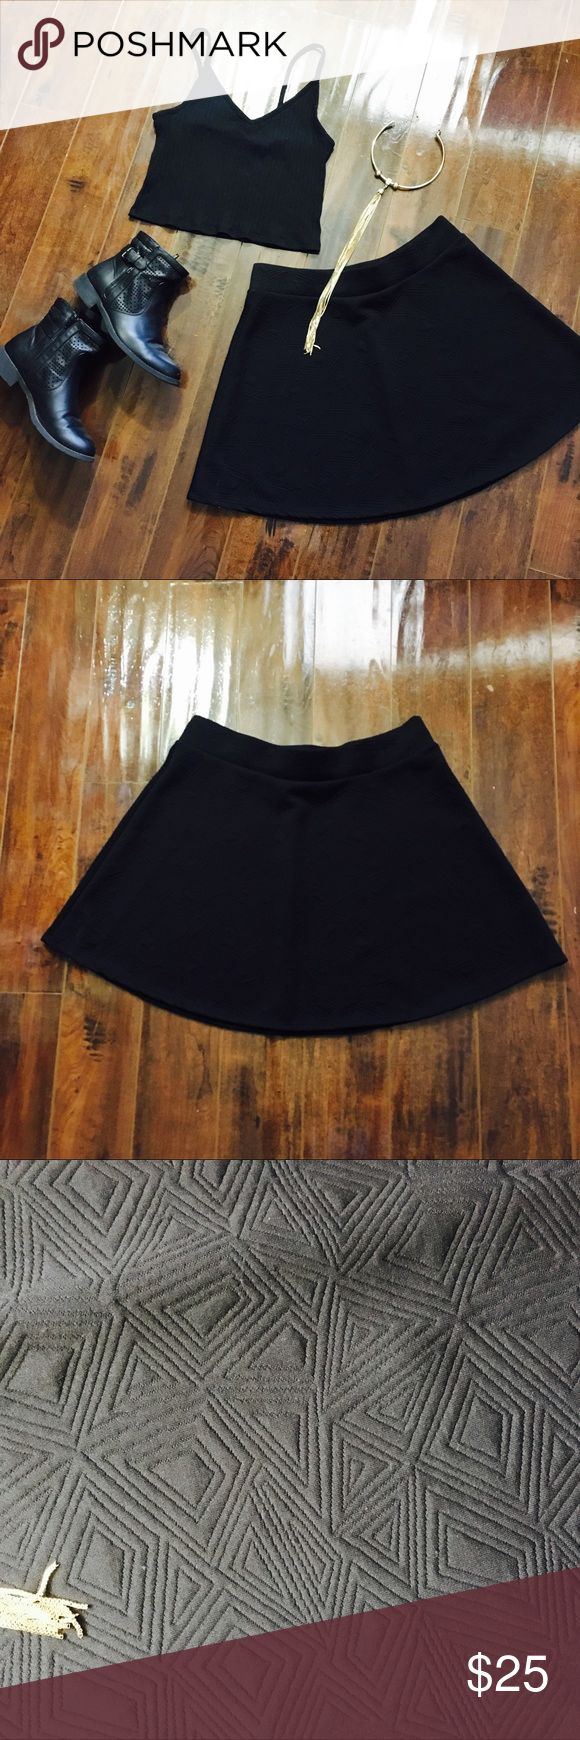 ⭐️ Stoosh Black Circle Skirt Brand New//Perfect Condition Flowy fit Details: Tribal Print Measurements: 34 in. (waist) 18 in. (length) Discounted bundles are available  Only reasonable offers are accepted.  Instagram: @ashaxrose Stoosh Skirts Circle & Skater